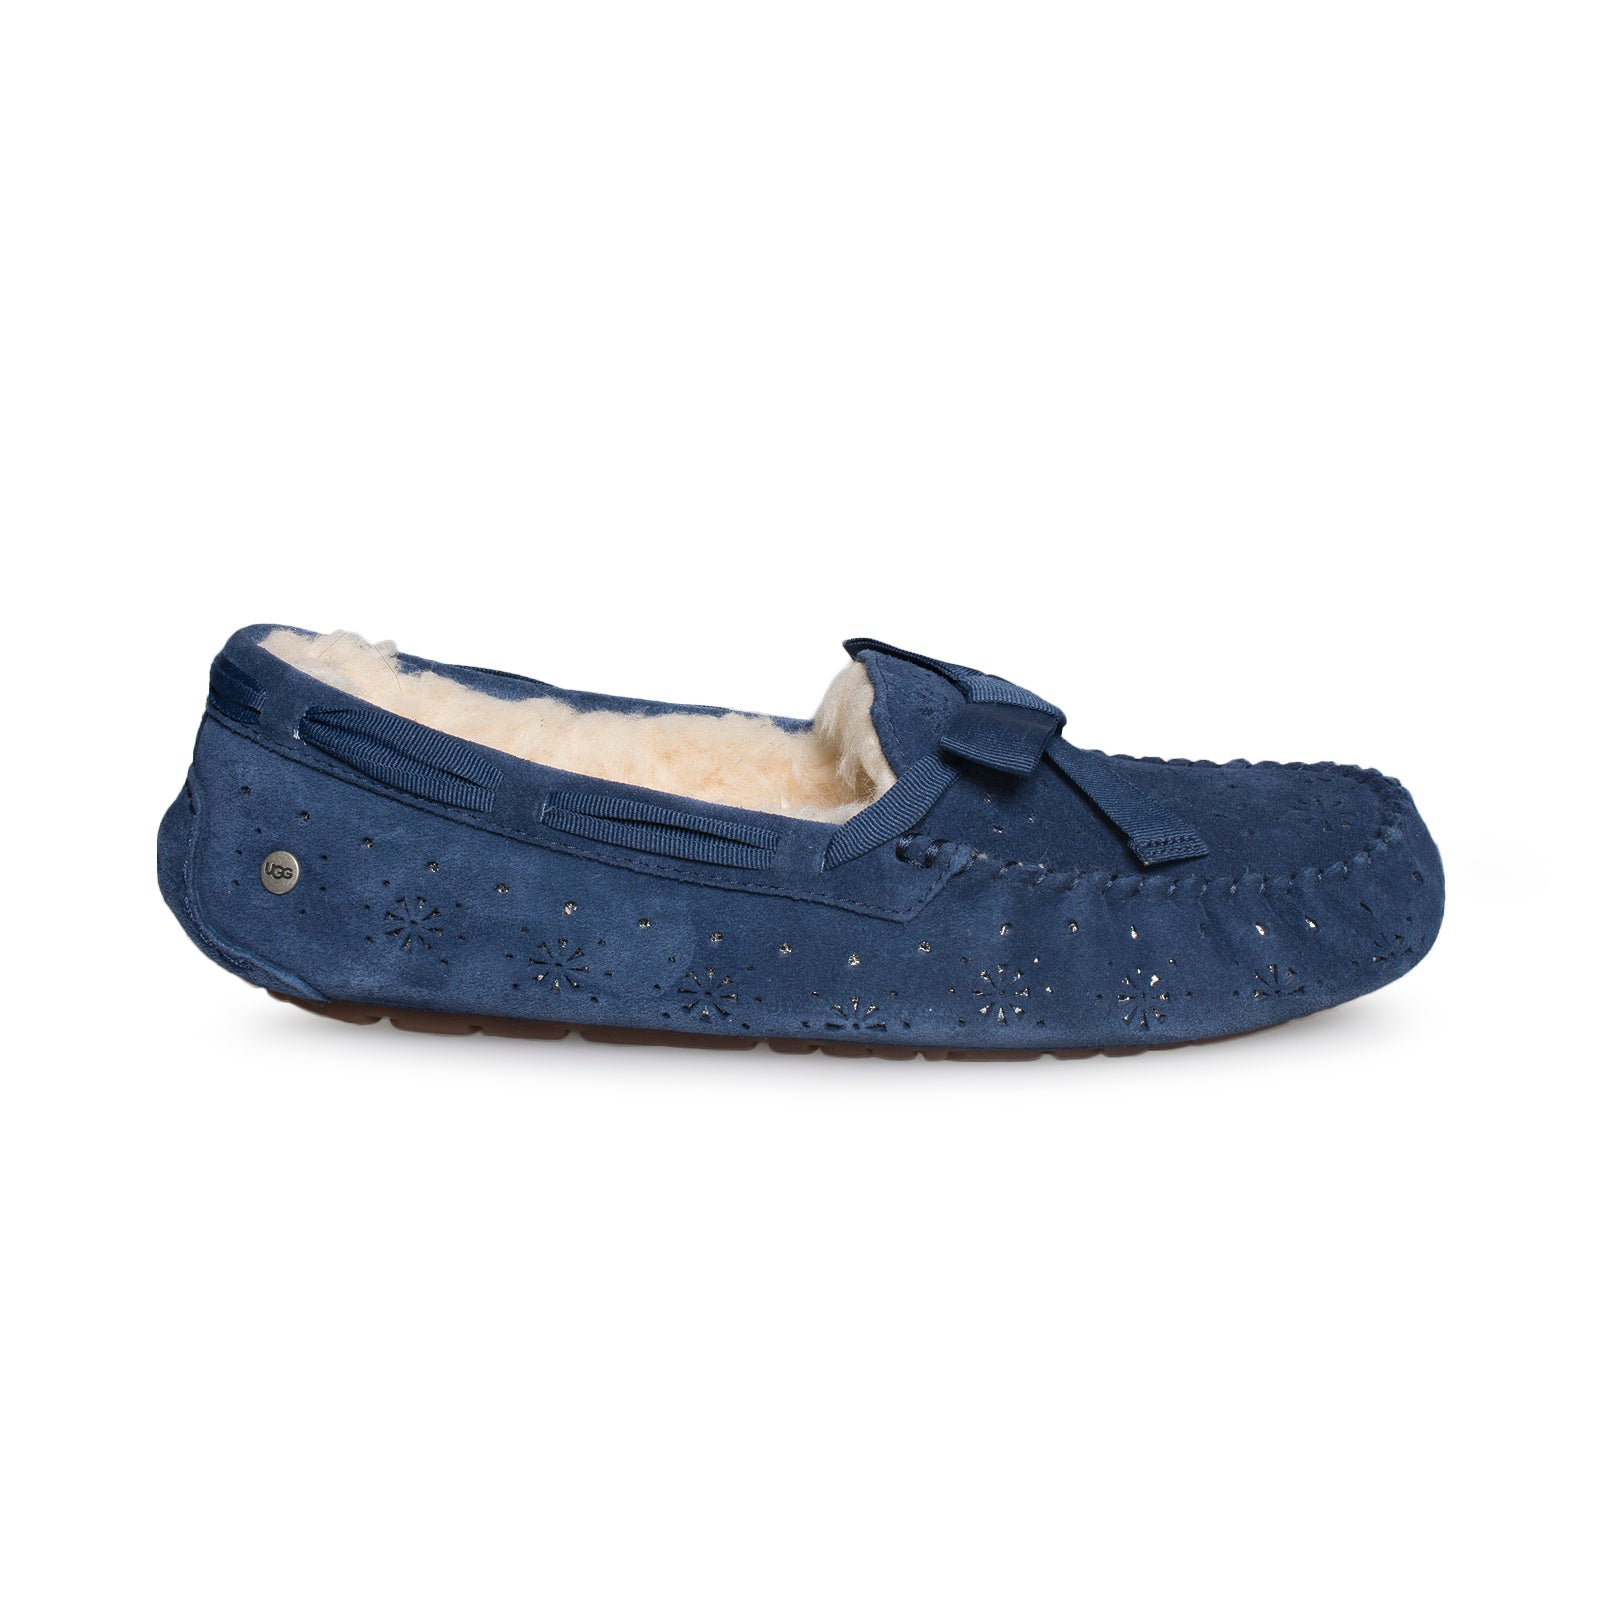 e094cb1dfca UGG Dakota Sunshine Perf Navy Slippers - Women's